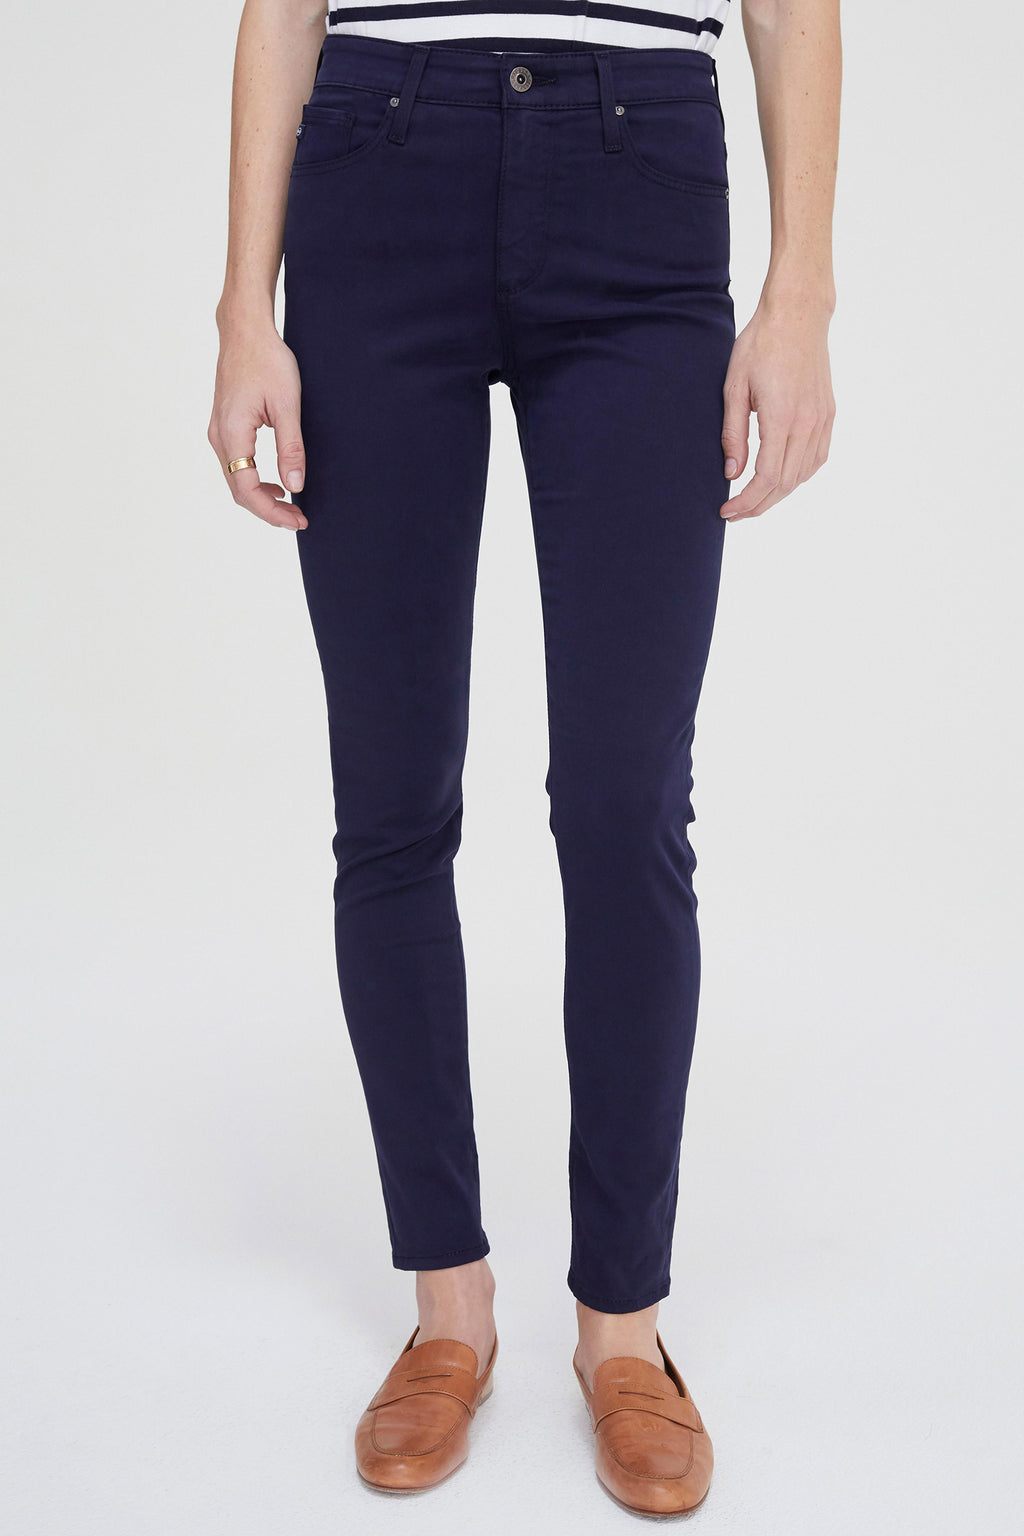 AG Jeans - Farrah Skinny Ankle Pants online at PAYA boutique